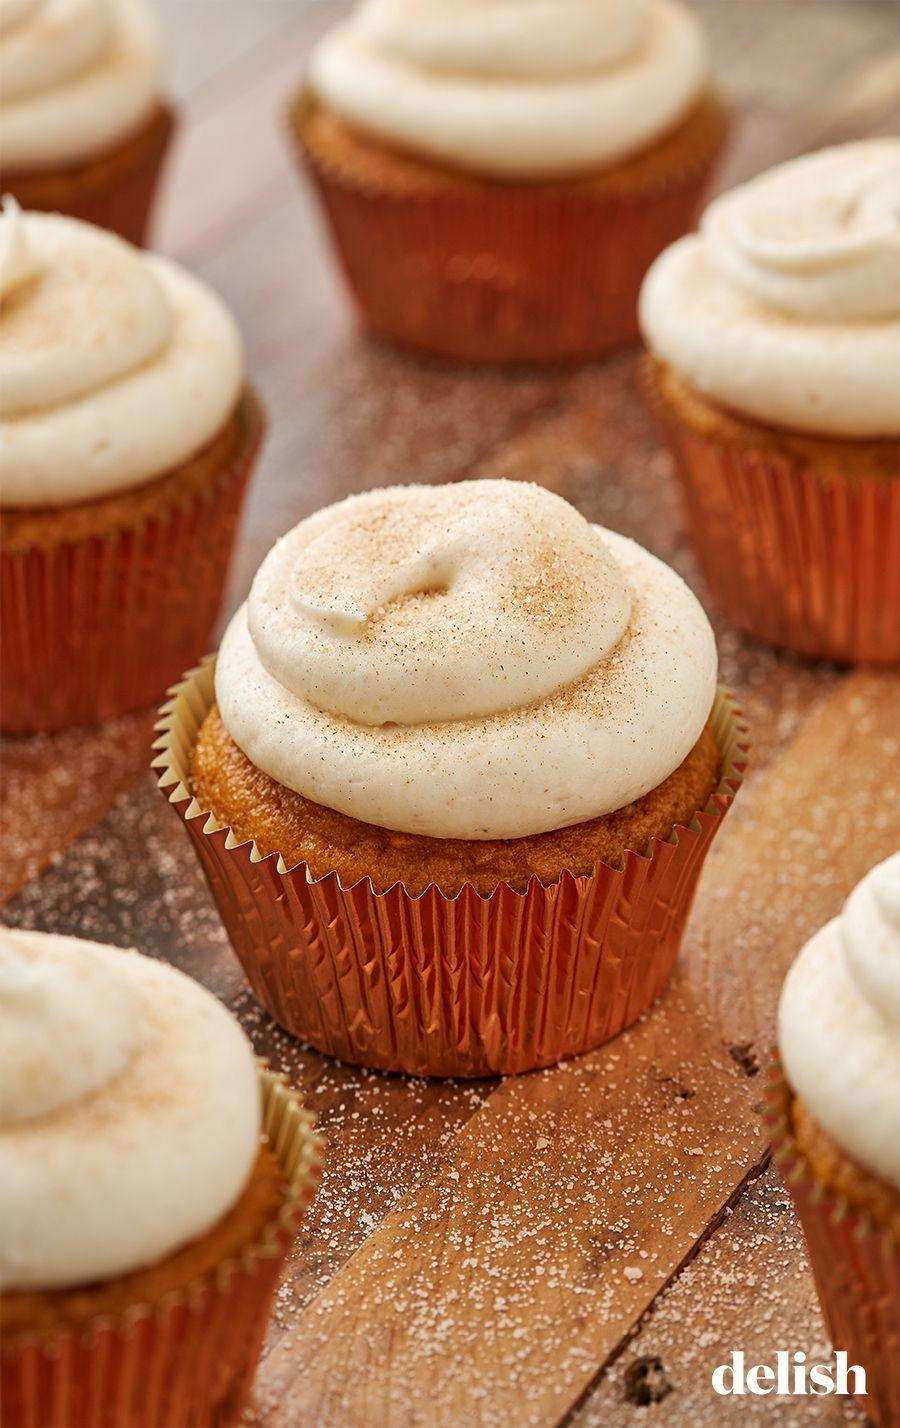 "<p>The sugar and spice on top is almost TOO good.</p><p>Get the recipe from <a href=""https://www.delish.com/cooking/recipe-ideas/a28438880/easy-pumpkin-spice-cupcakes-recipe/"" rel=""nofollow noopener"" target=""_blank"" data-ylk=""slk:Delish"" class=""link rapid-noclick-resp"">Delish</a>.</p>"